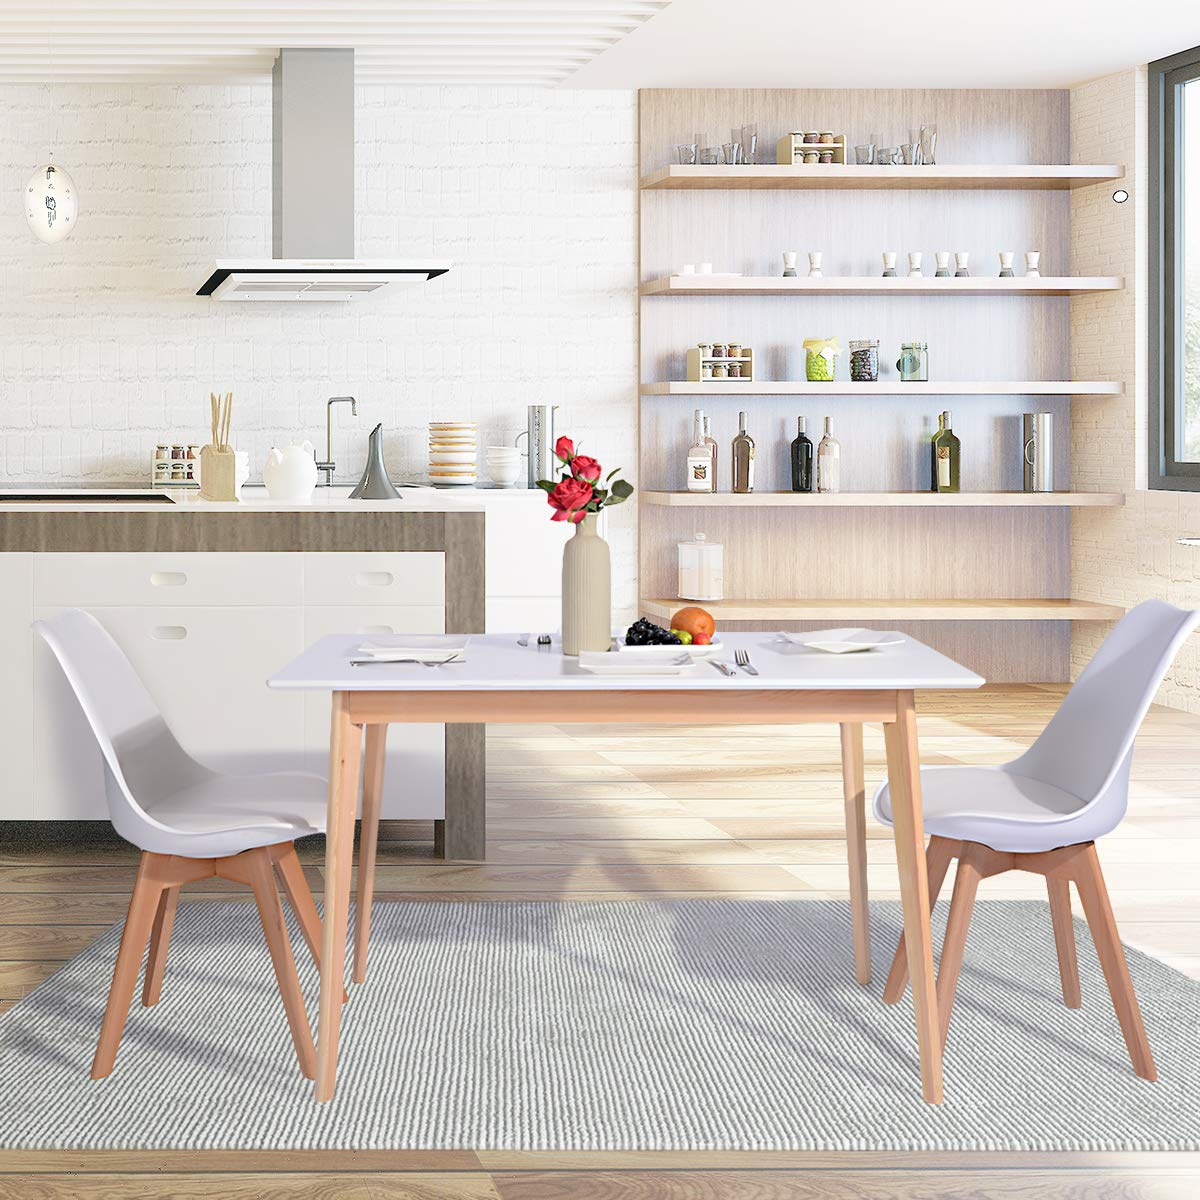 GreenForest Dining Table Mid Century Modern Rectangular Kitchen Leisure Table with Solid Wooden Legs 47.2'' x 27.6''x 30'', White by GreenForest (Image #3)